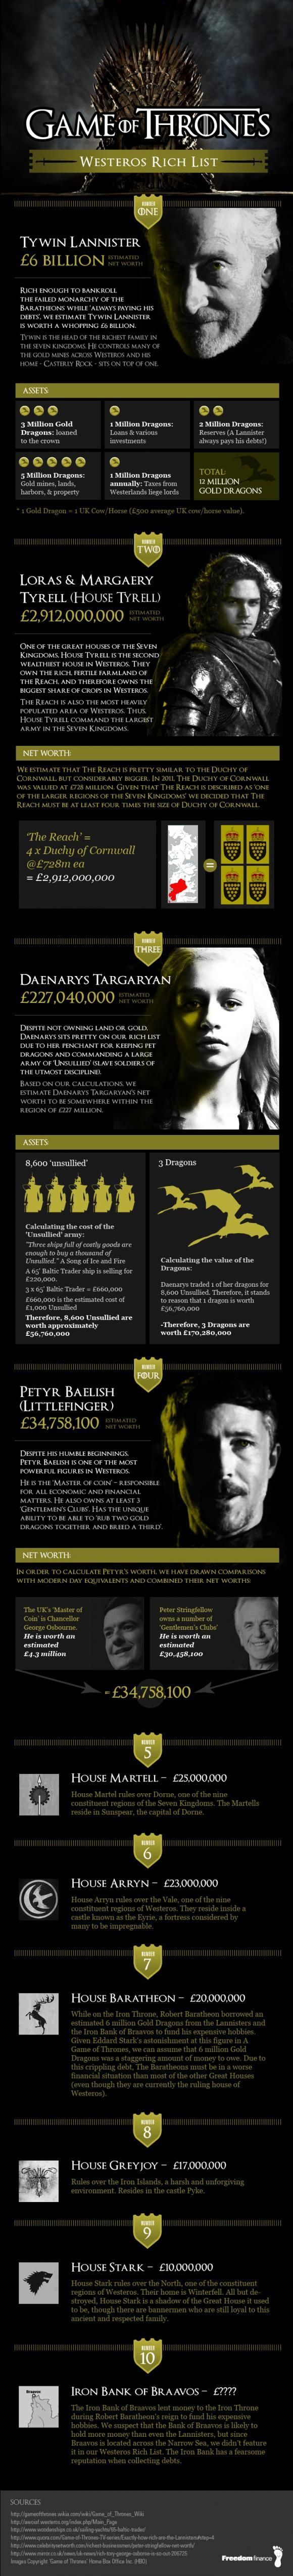 Game of Thrones Rich List infographic shows Westeros' net worth | Blastr